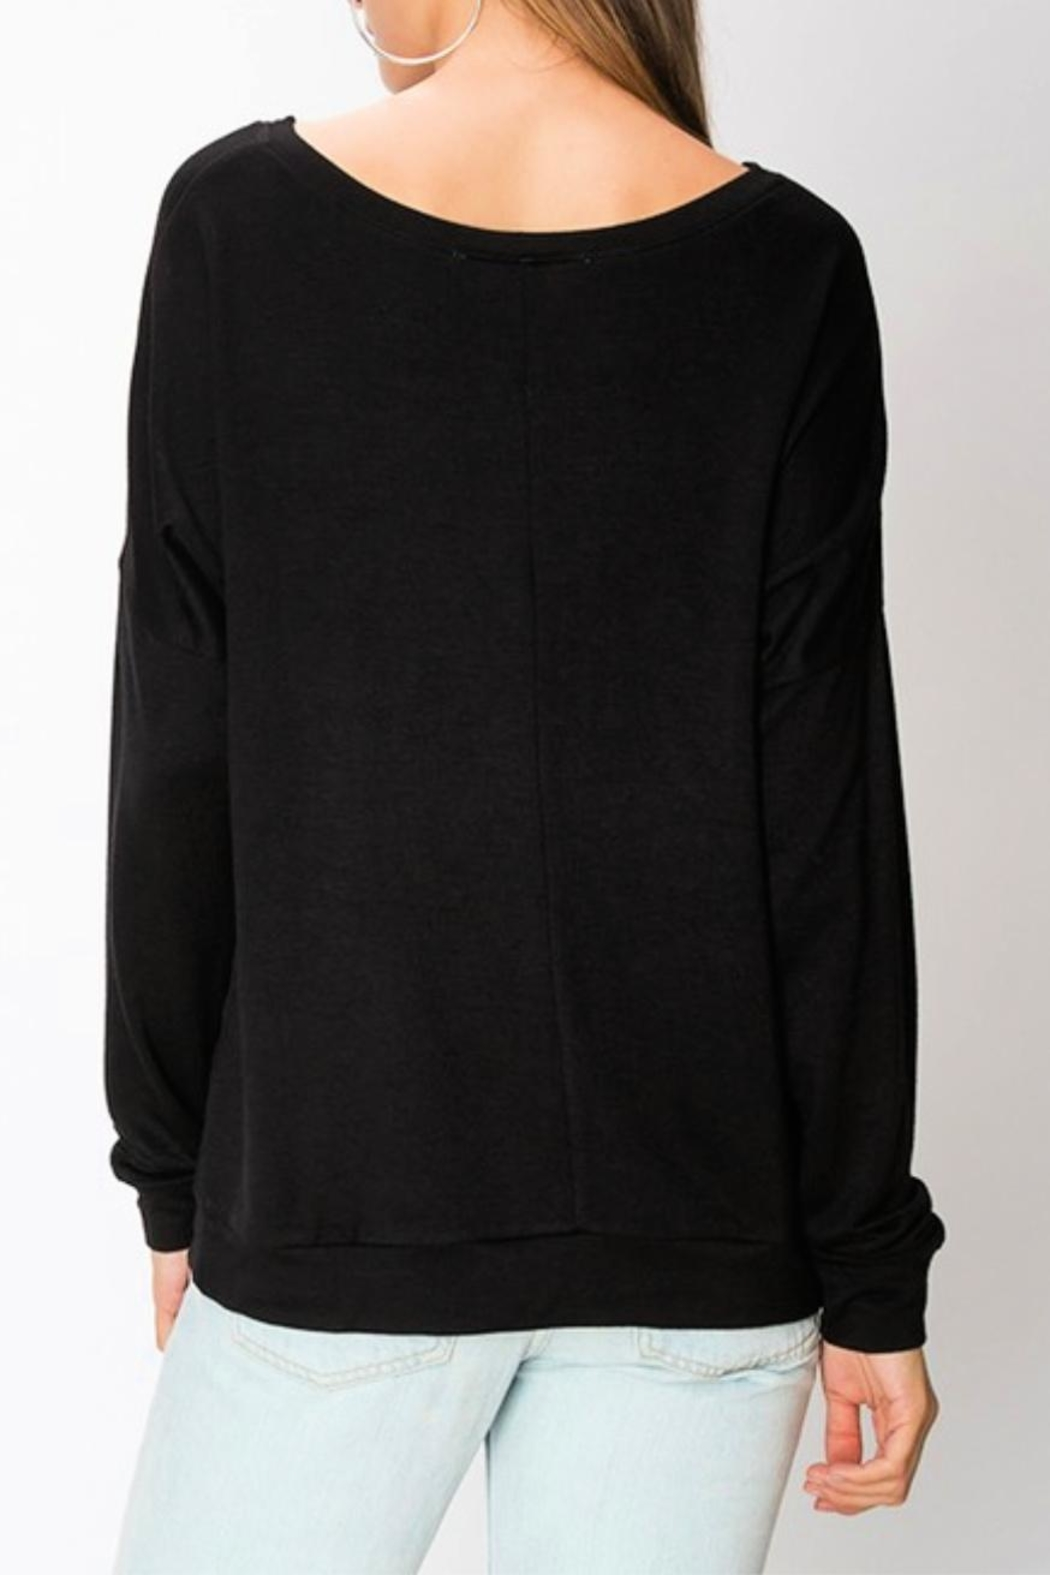 Miss Darlin Fleece Boatneck Sweatshirt - Side Cropped Image